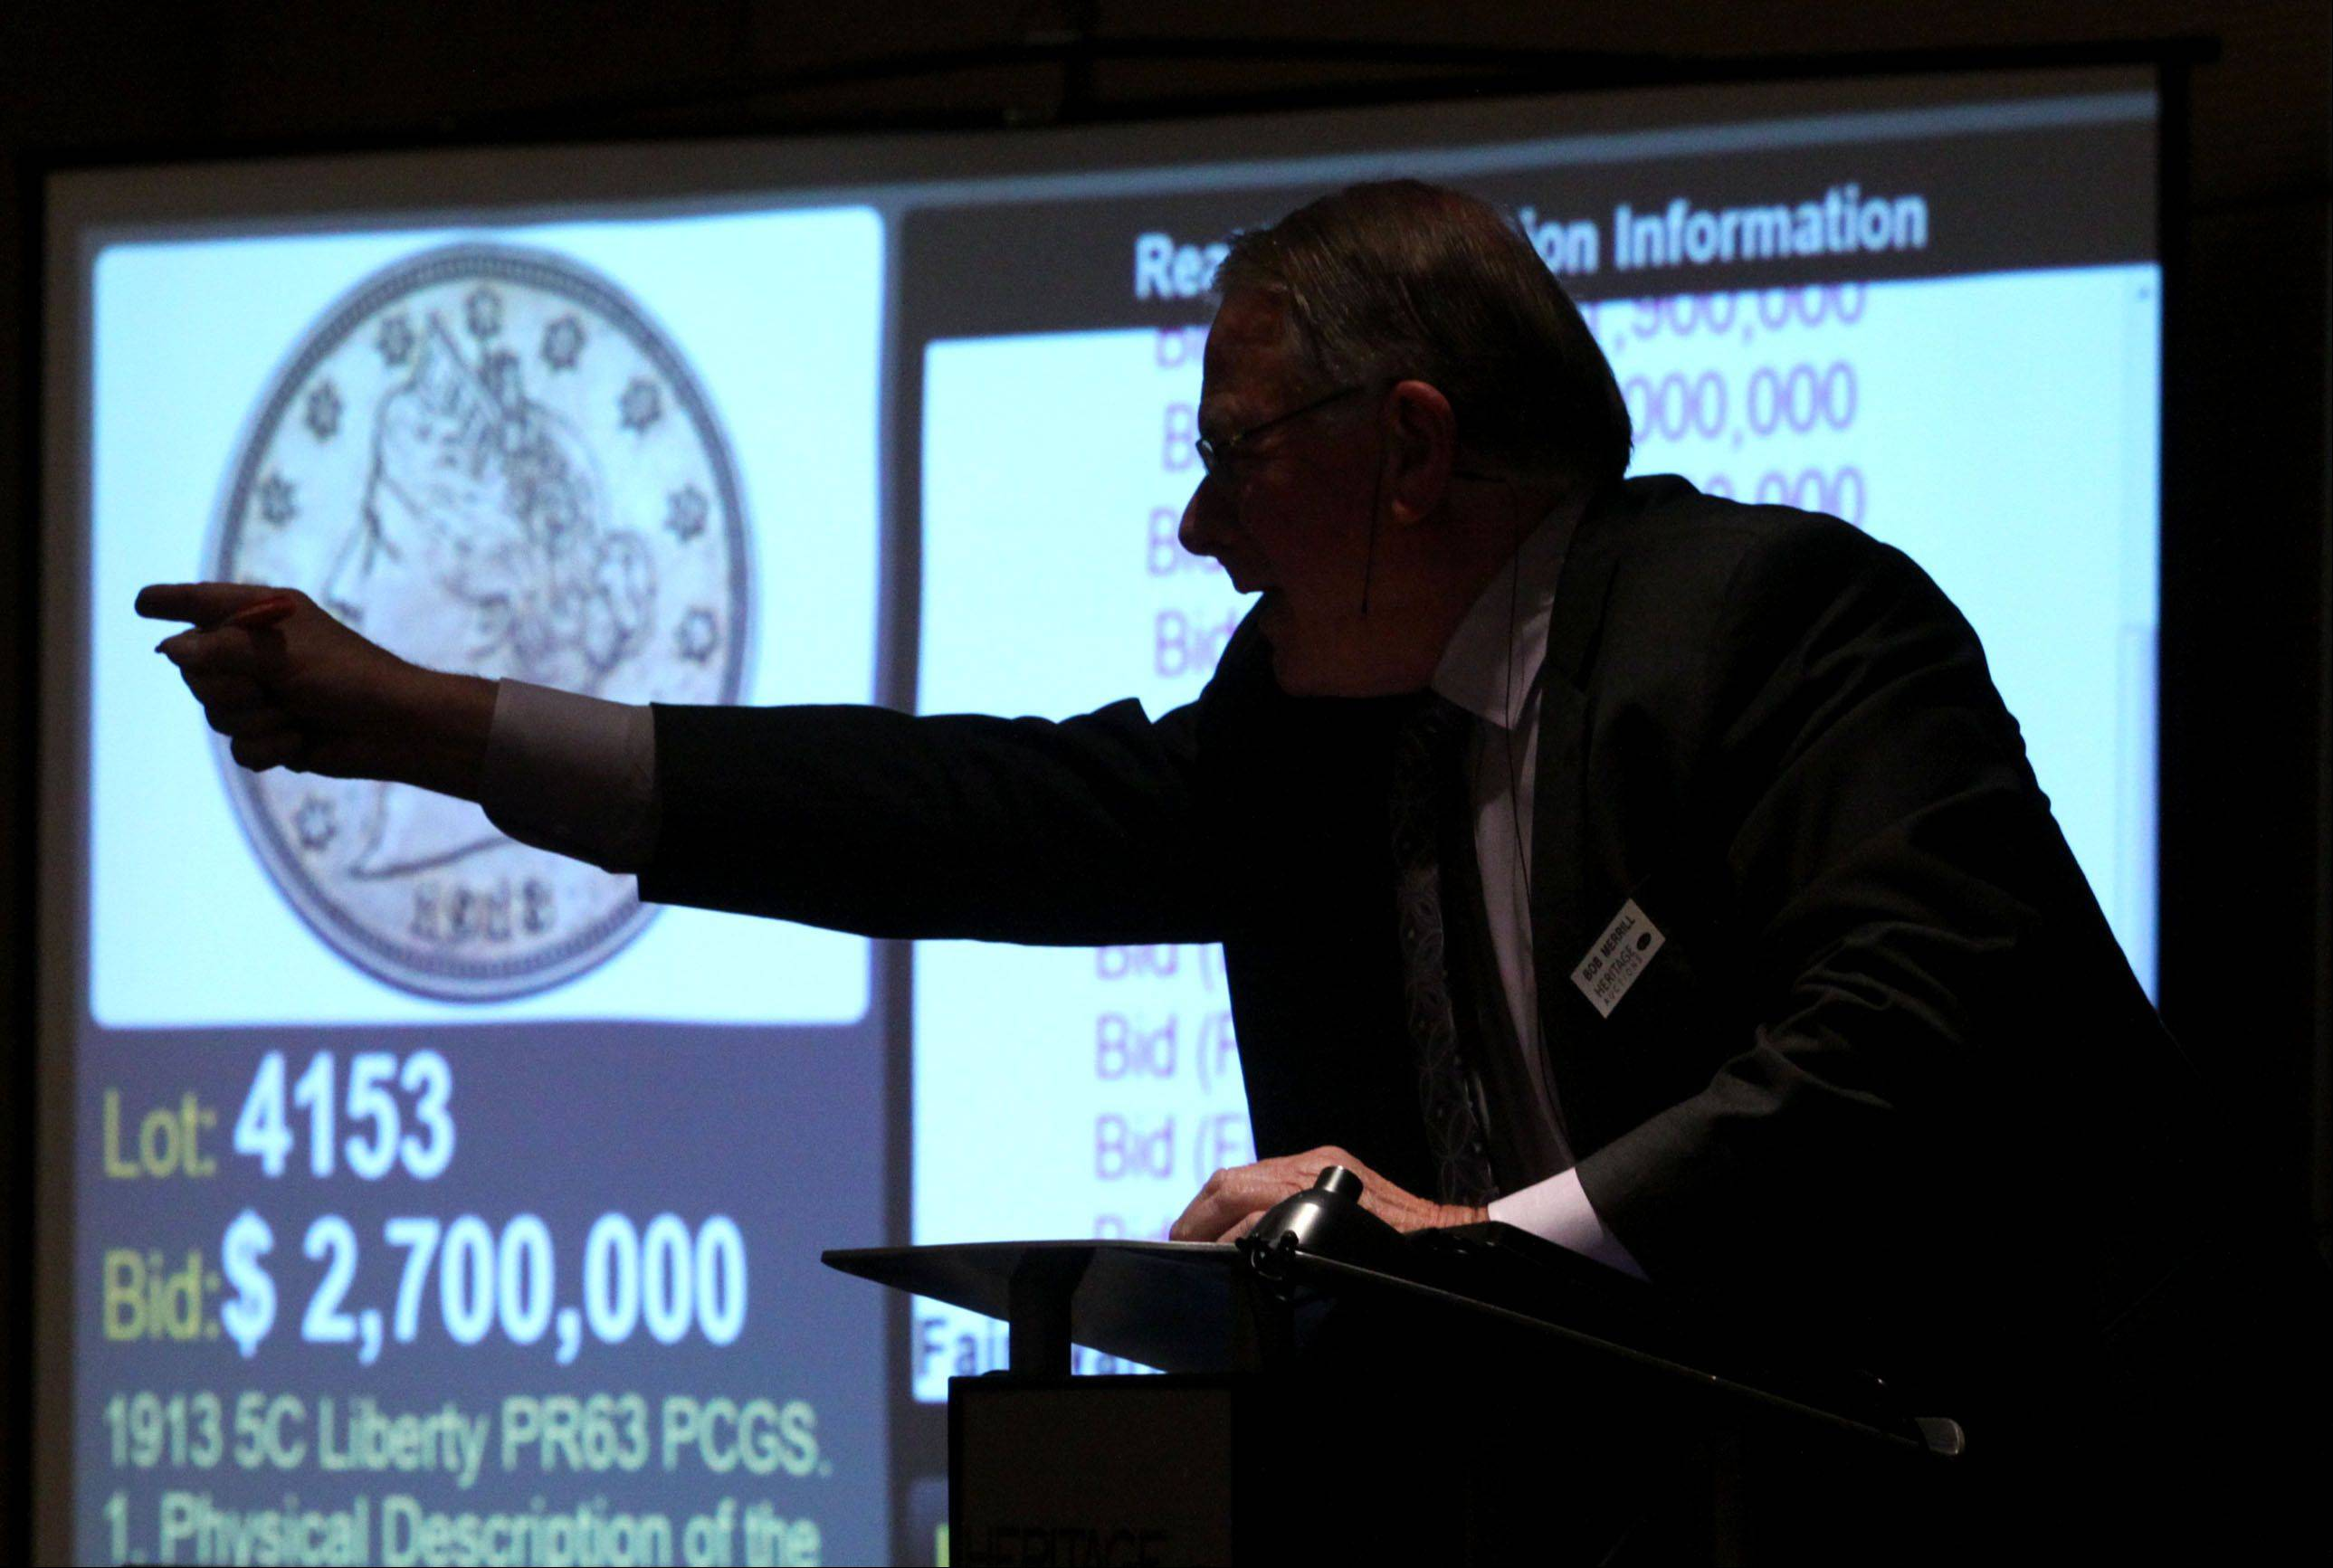 Auctioneer Bob Merrill of Heritage Auctions calls the winning bid at 2.7 million dollars as a 1913 Liberty Head Nickel - one of only five known to exist - was auctioned Thursday night during the Central States Numismatic Society show at the Schaumburg Convention Center.